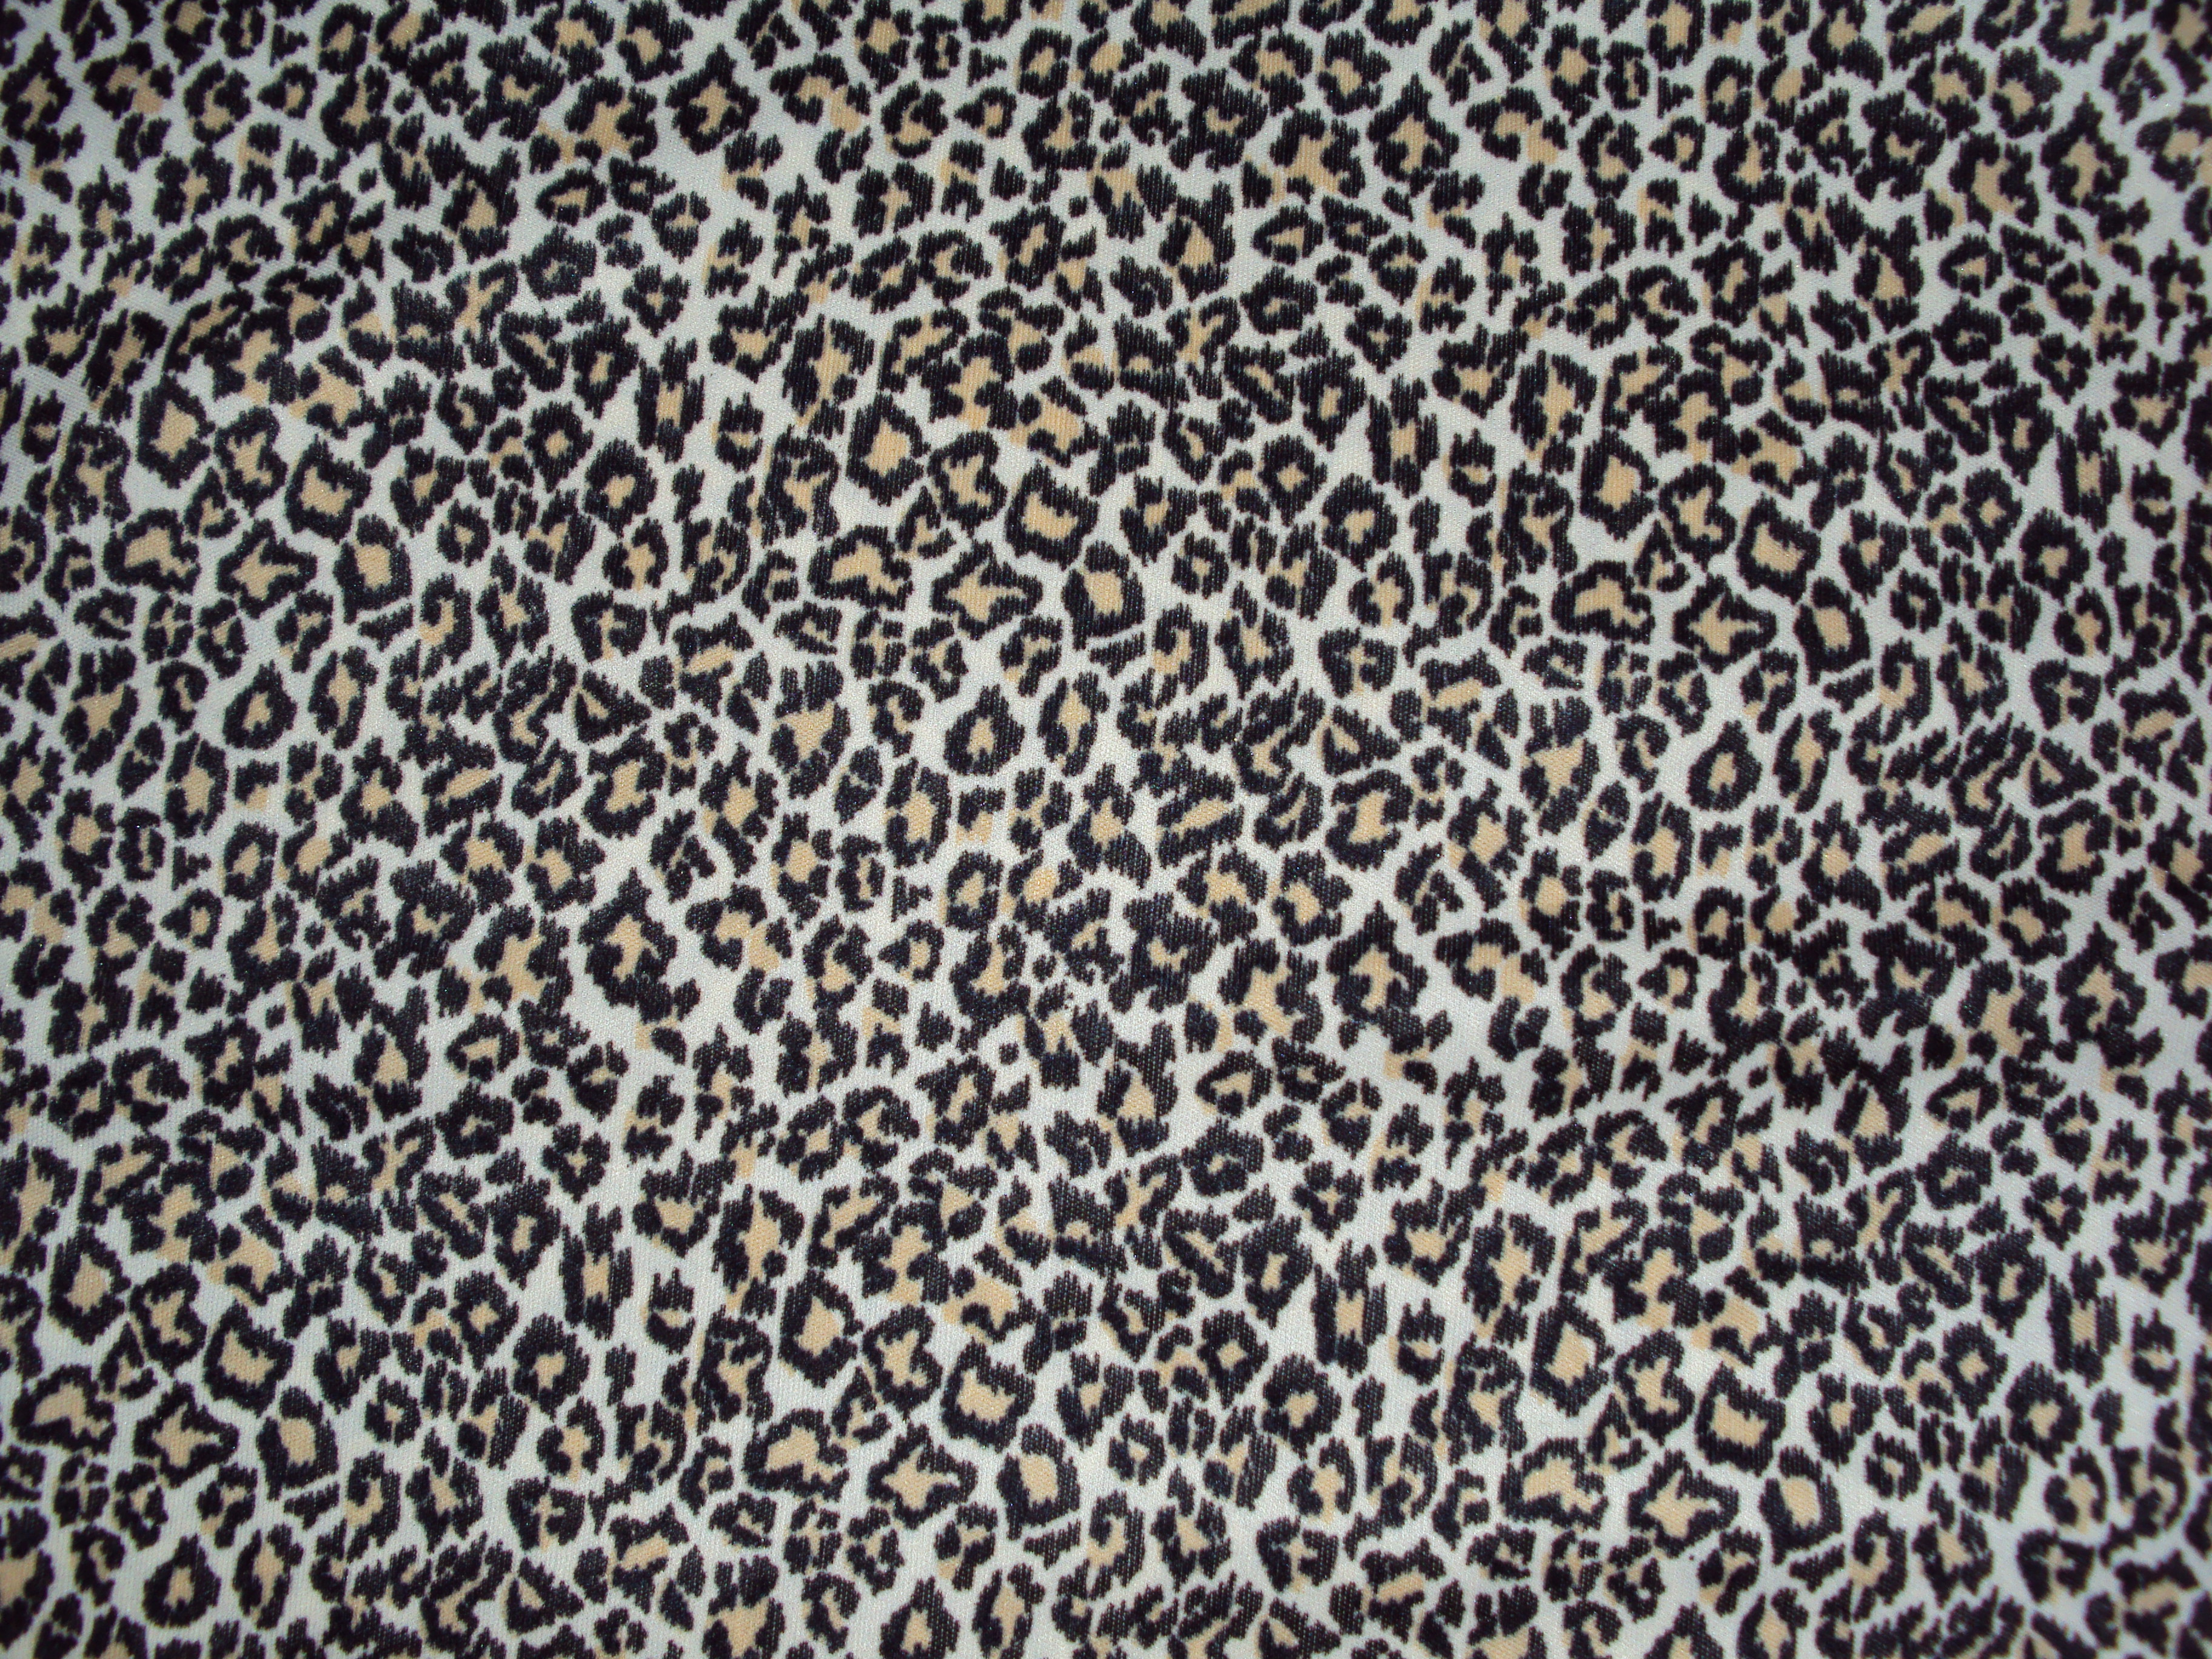 another leopard texture by ghoulskout on DeviantArt